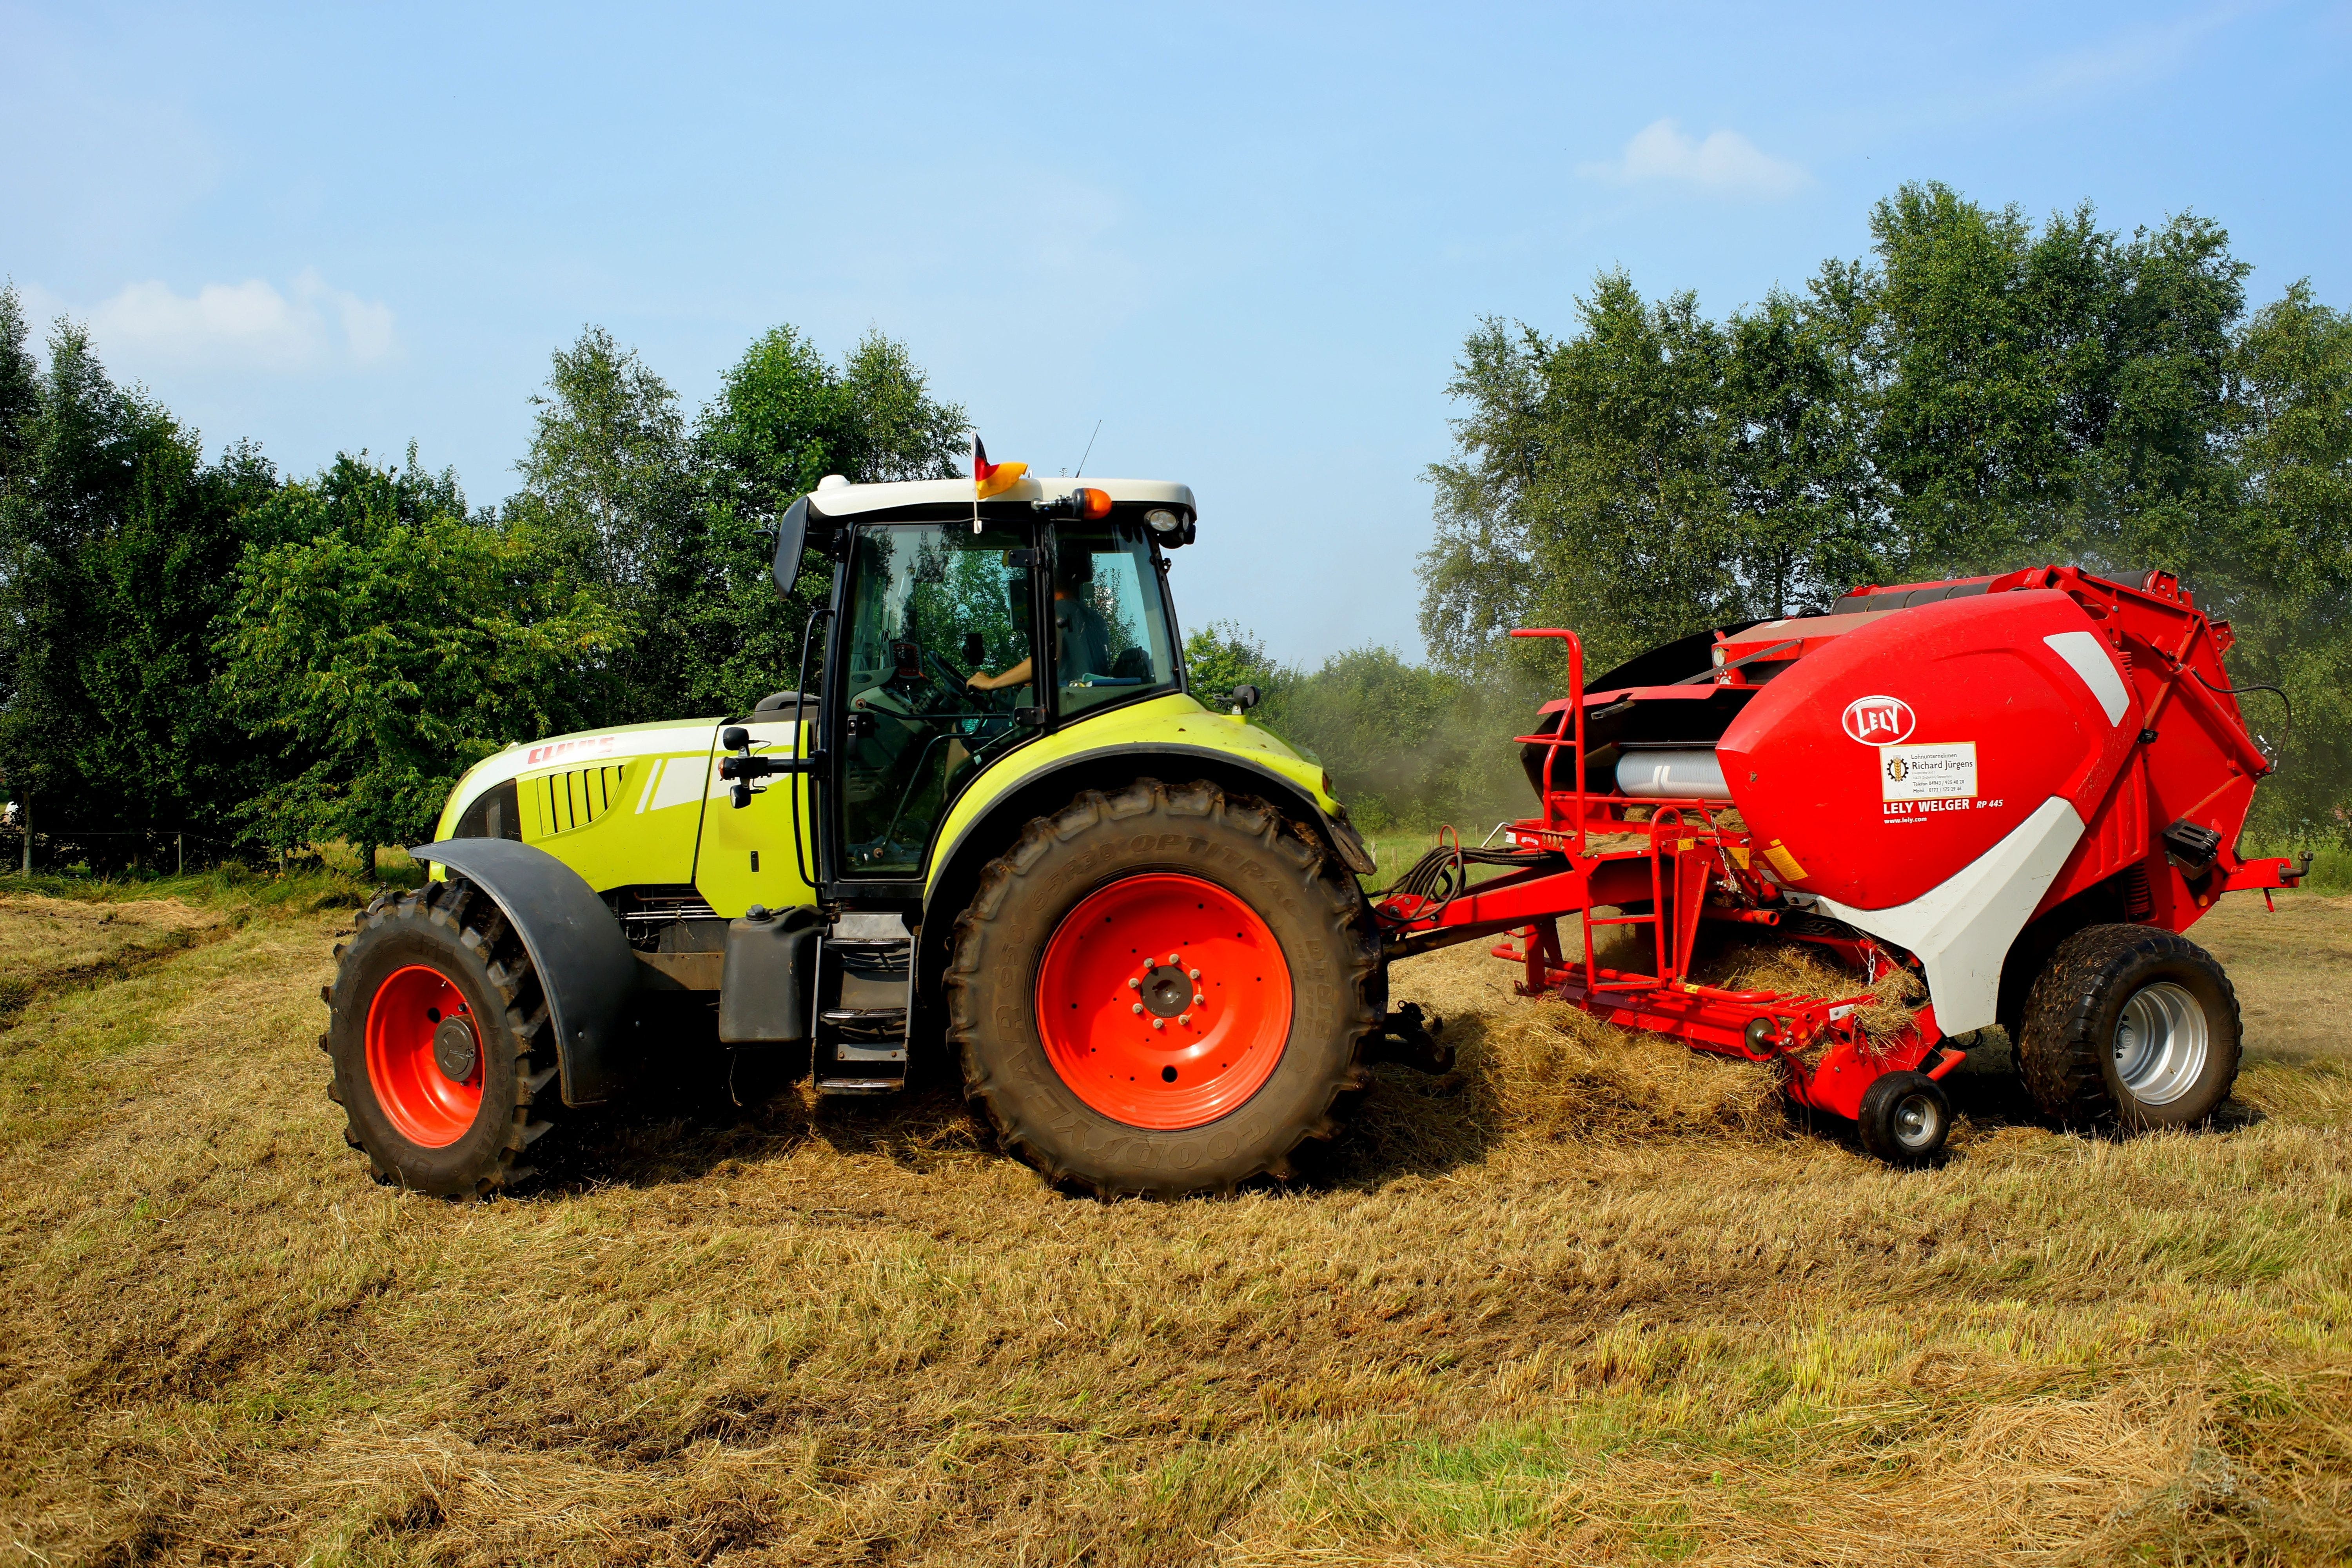 Red Yellow and White Tractor on Grass Field during Daytime